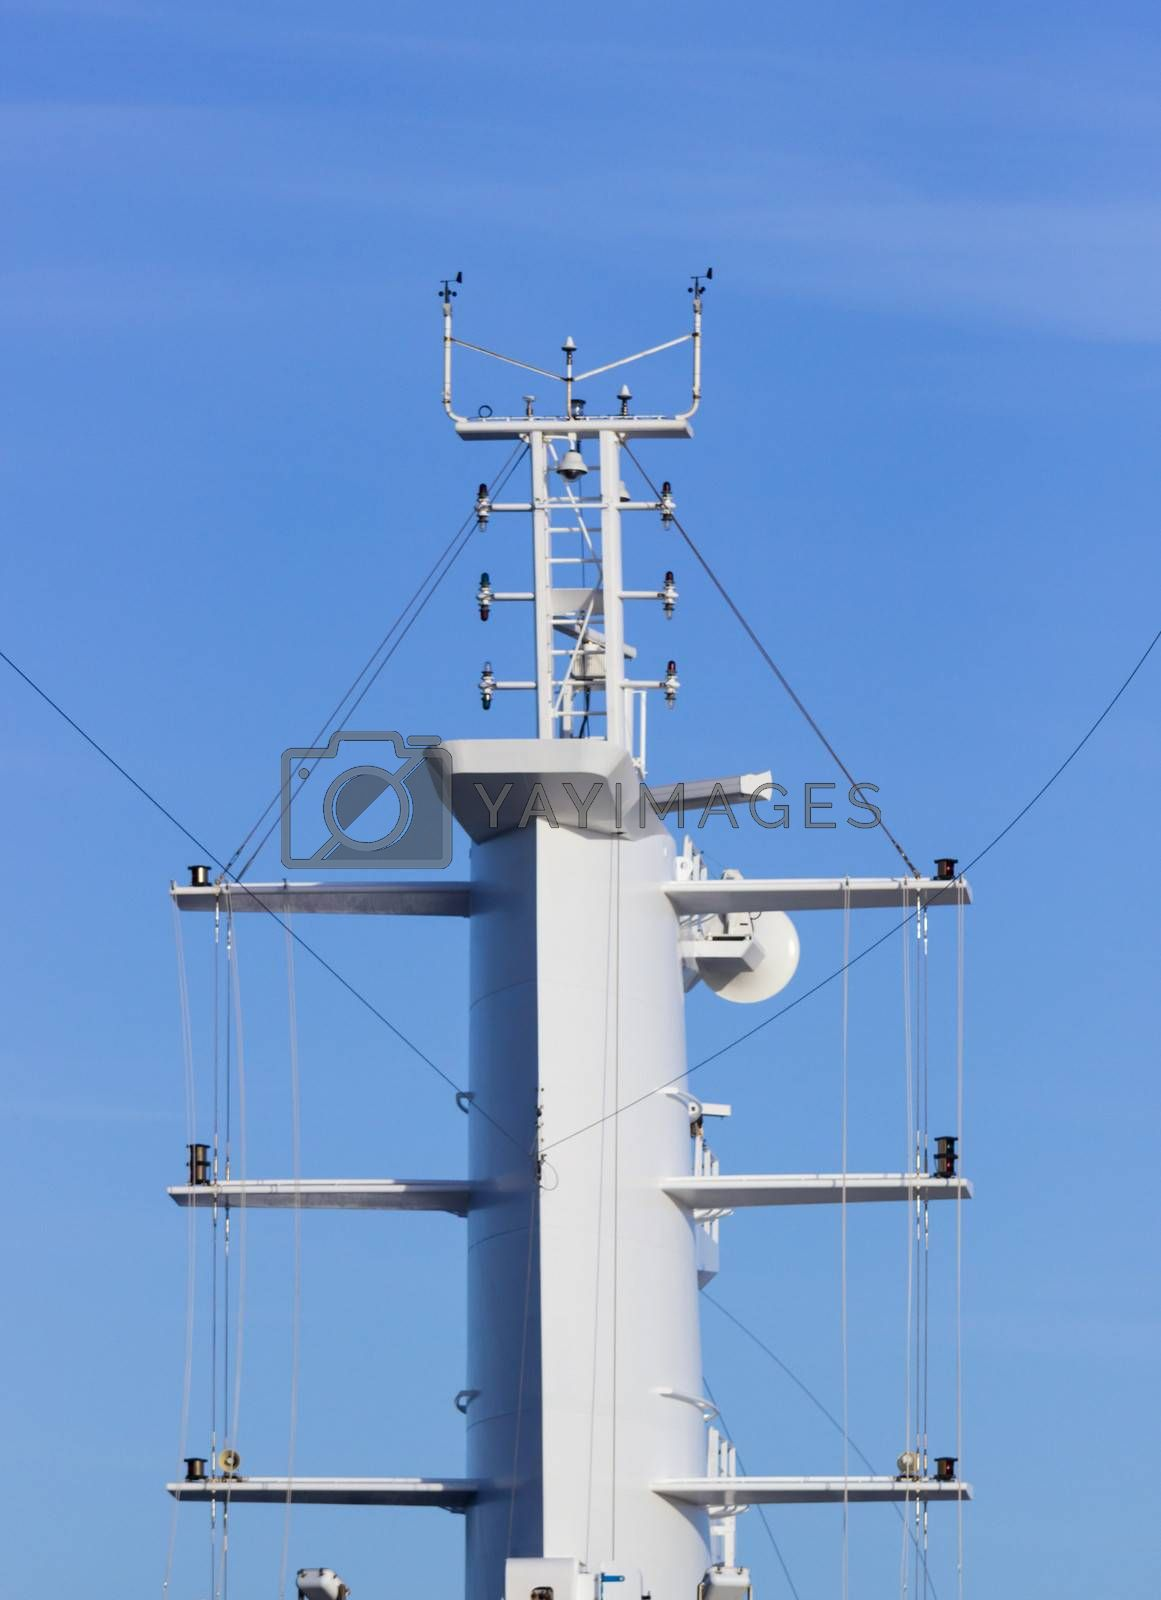 Communication tower or mast on large cruise ship with aerials and antennae against blue sky